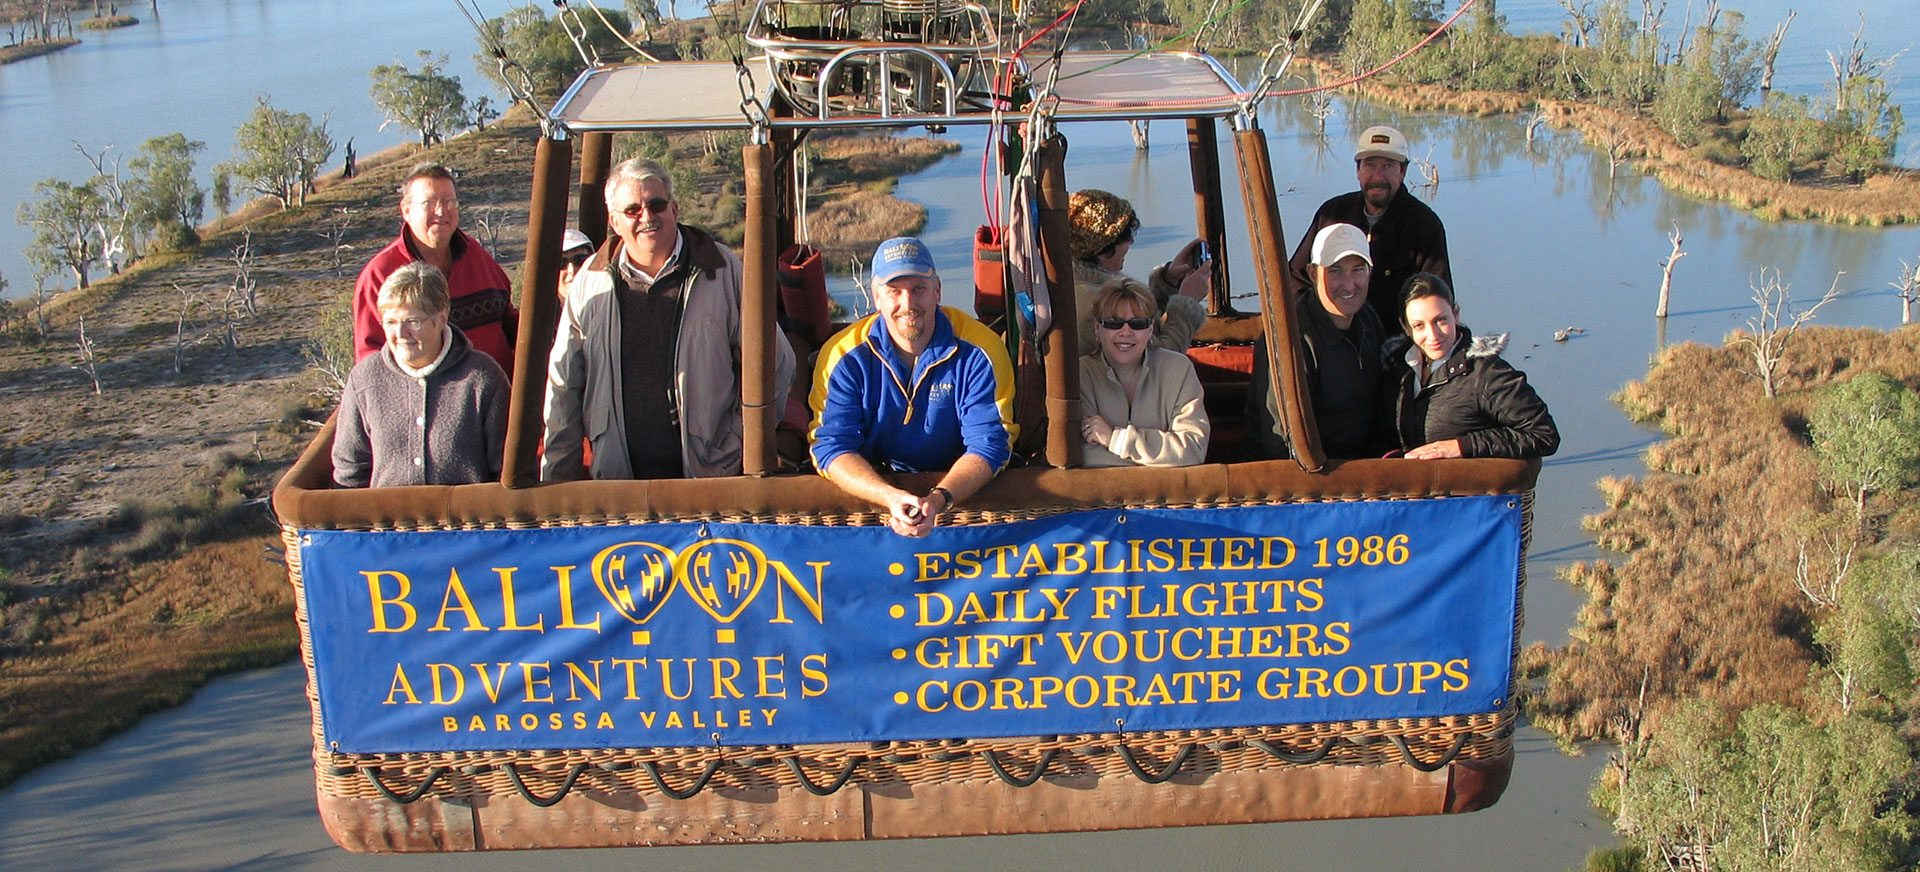 balloon-adventures-barossa-valley-hot-air-balloon-flights-over-the-river-murray-1